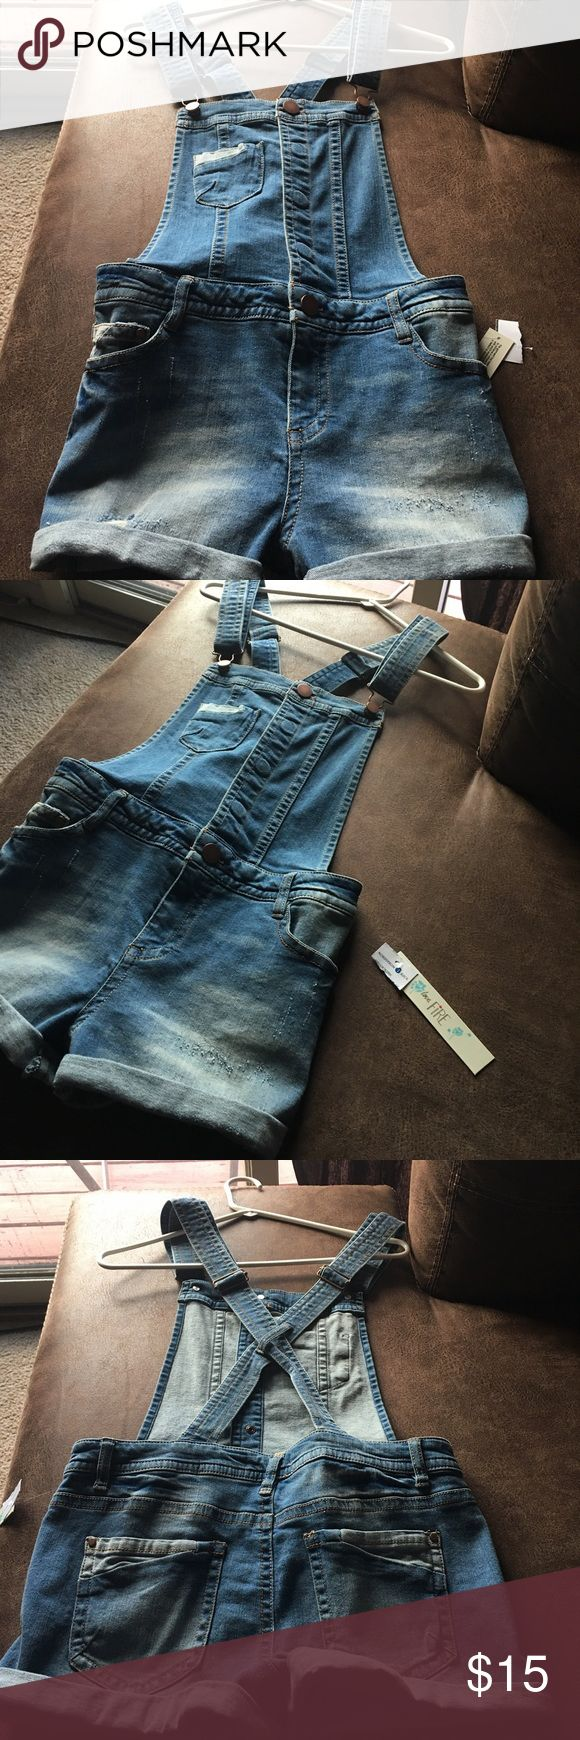 Jean Jumper Denim Jean Jumper for the summer!  Purchased at Nordstrom Rack and never worn! NWT! Perfect for a teenager or a vacation look with a pair of converses, flip flops or make it sexy with a pair of pumps! Your choice, but you can't go wrong! I lose weight, so I may need a small or XS in this brand. Happy Shopping!  Love Fire Shorts Jean Shorts